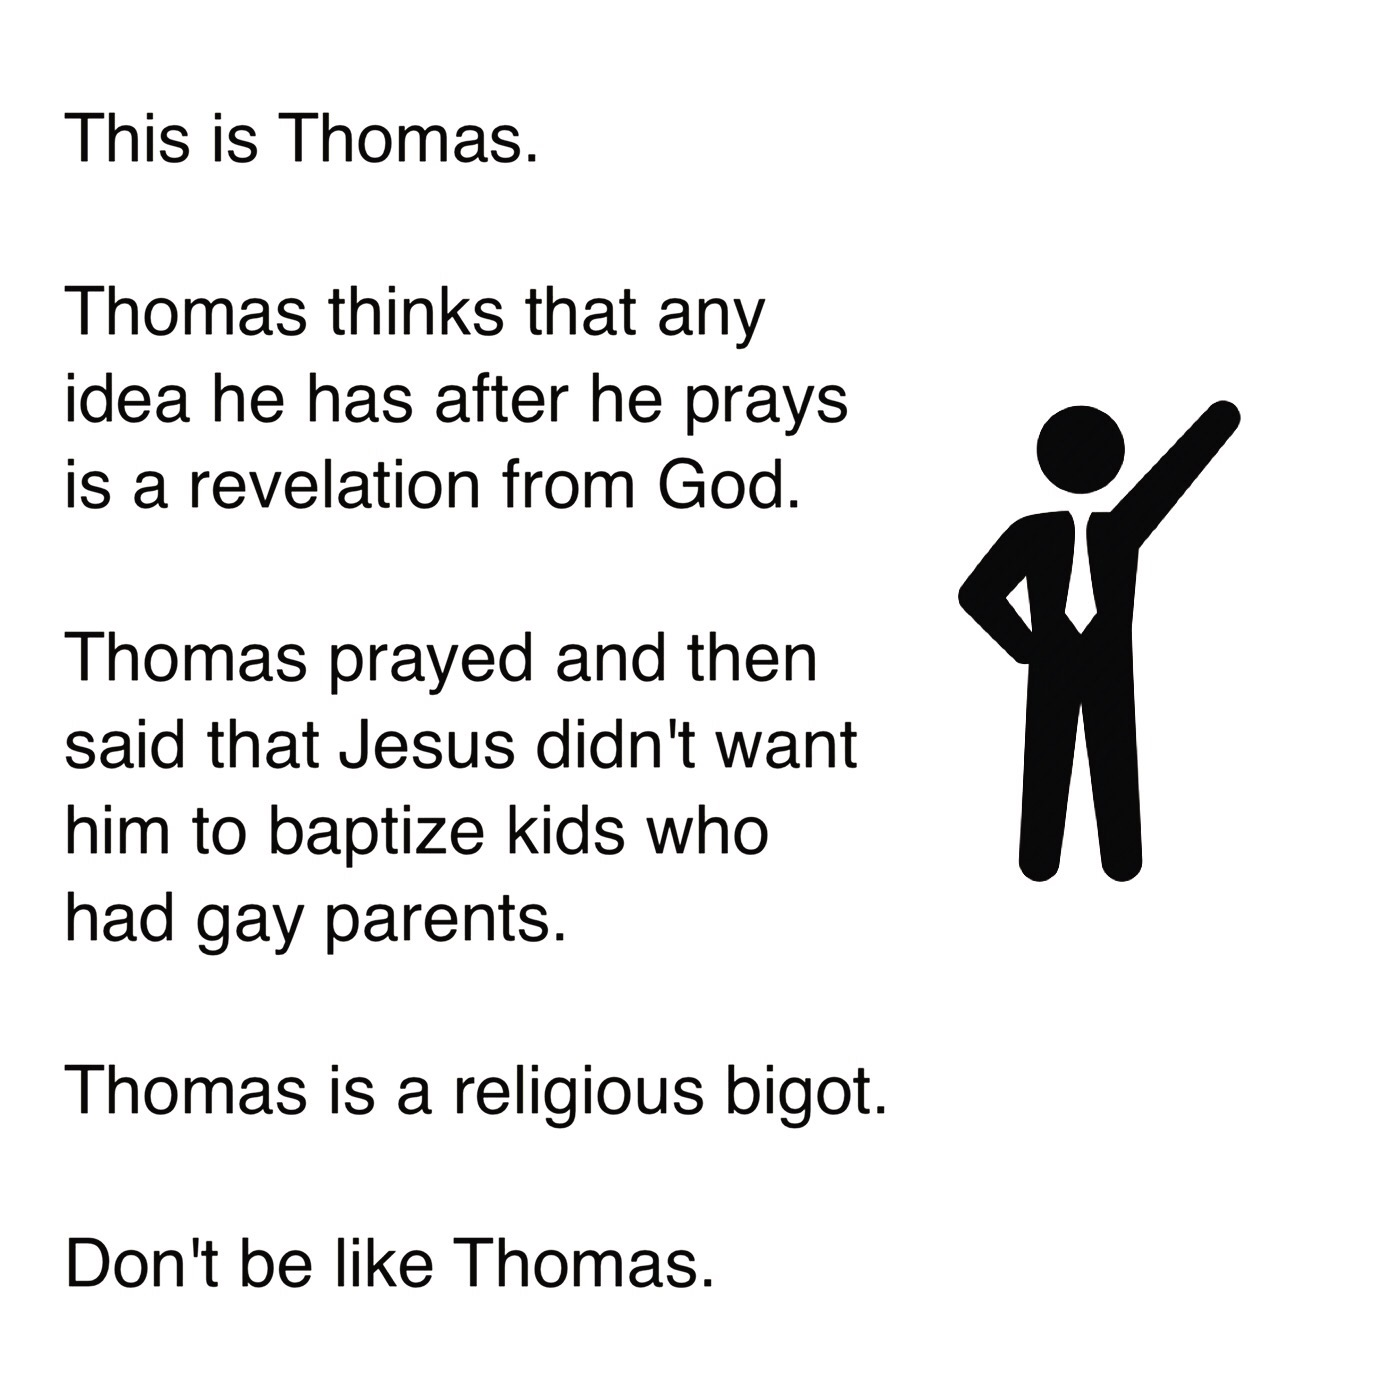 Don't be like Thomas